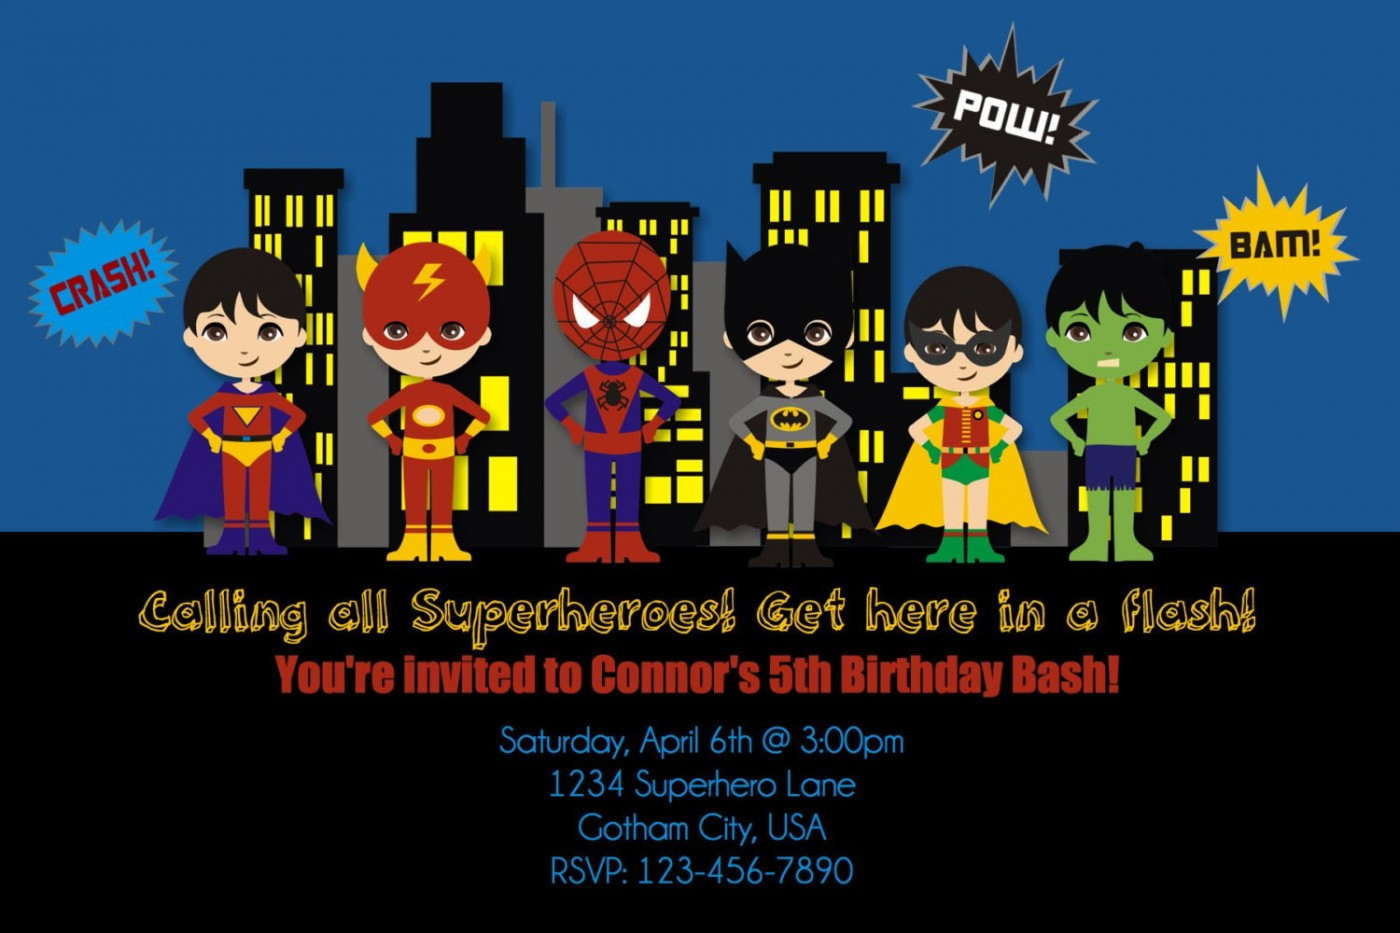 008 Exceptional Editable Superhero Invitation Template Free Concept 1400